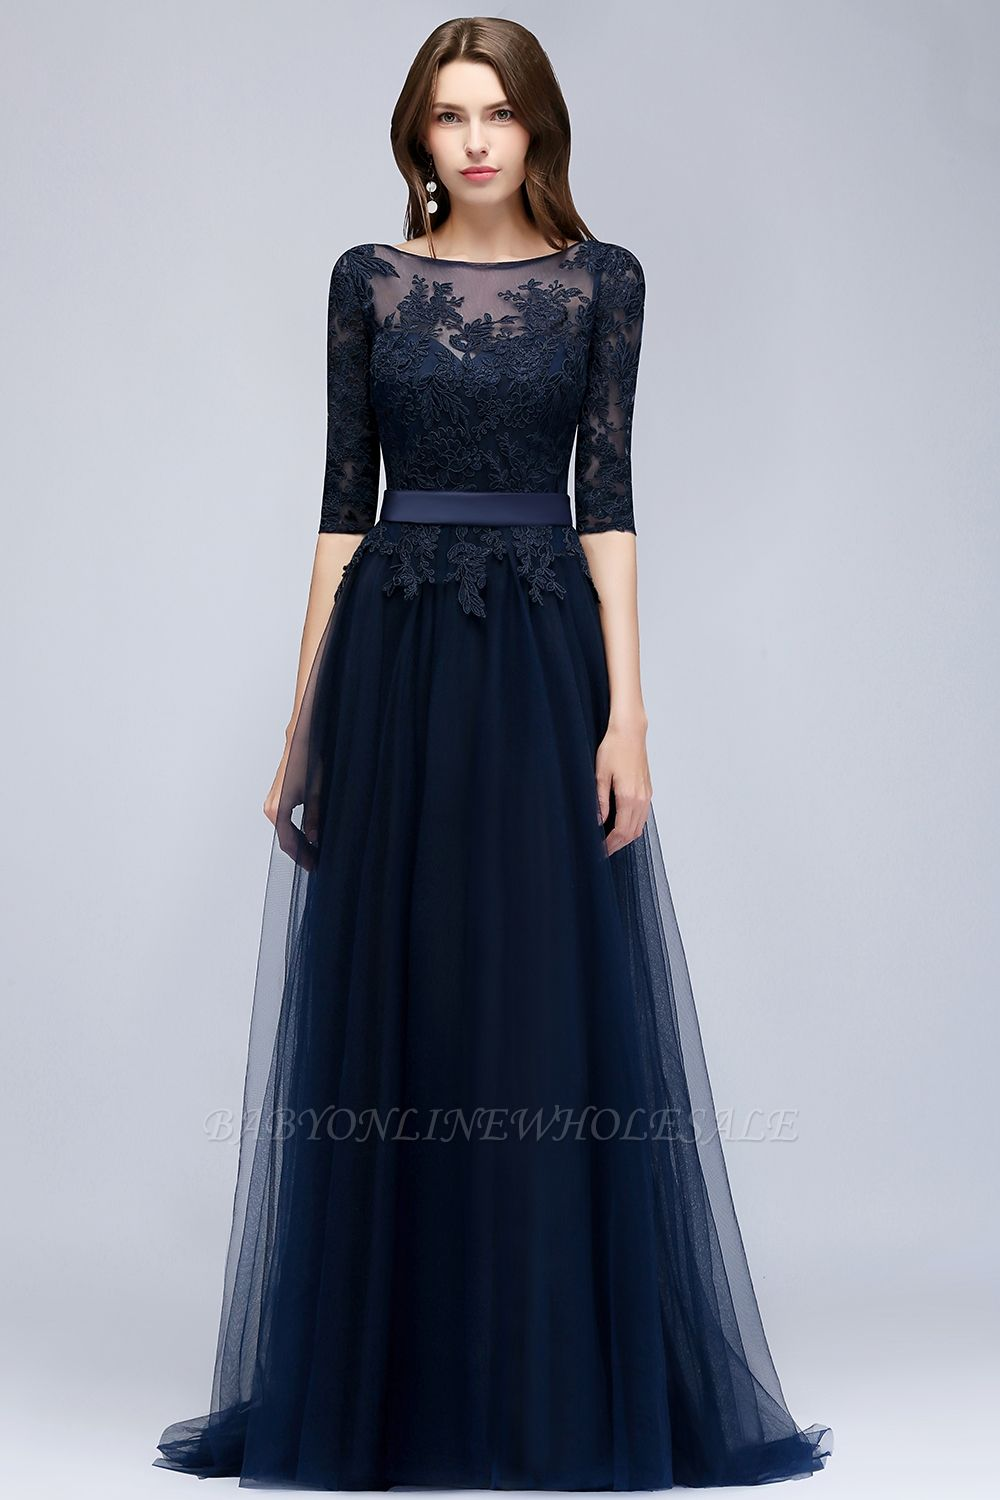 9ae3604017bb NANA | A-line Half Sleeves Floor Length Slit Appliqued Tulle Prom Dresses  with Sash | www.babyonlinewholesale.com